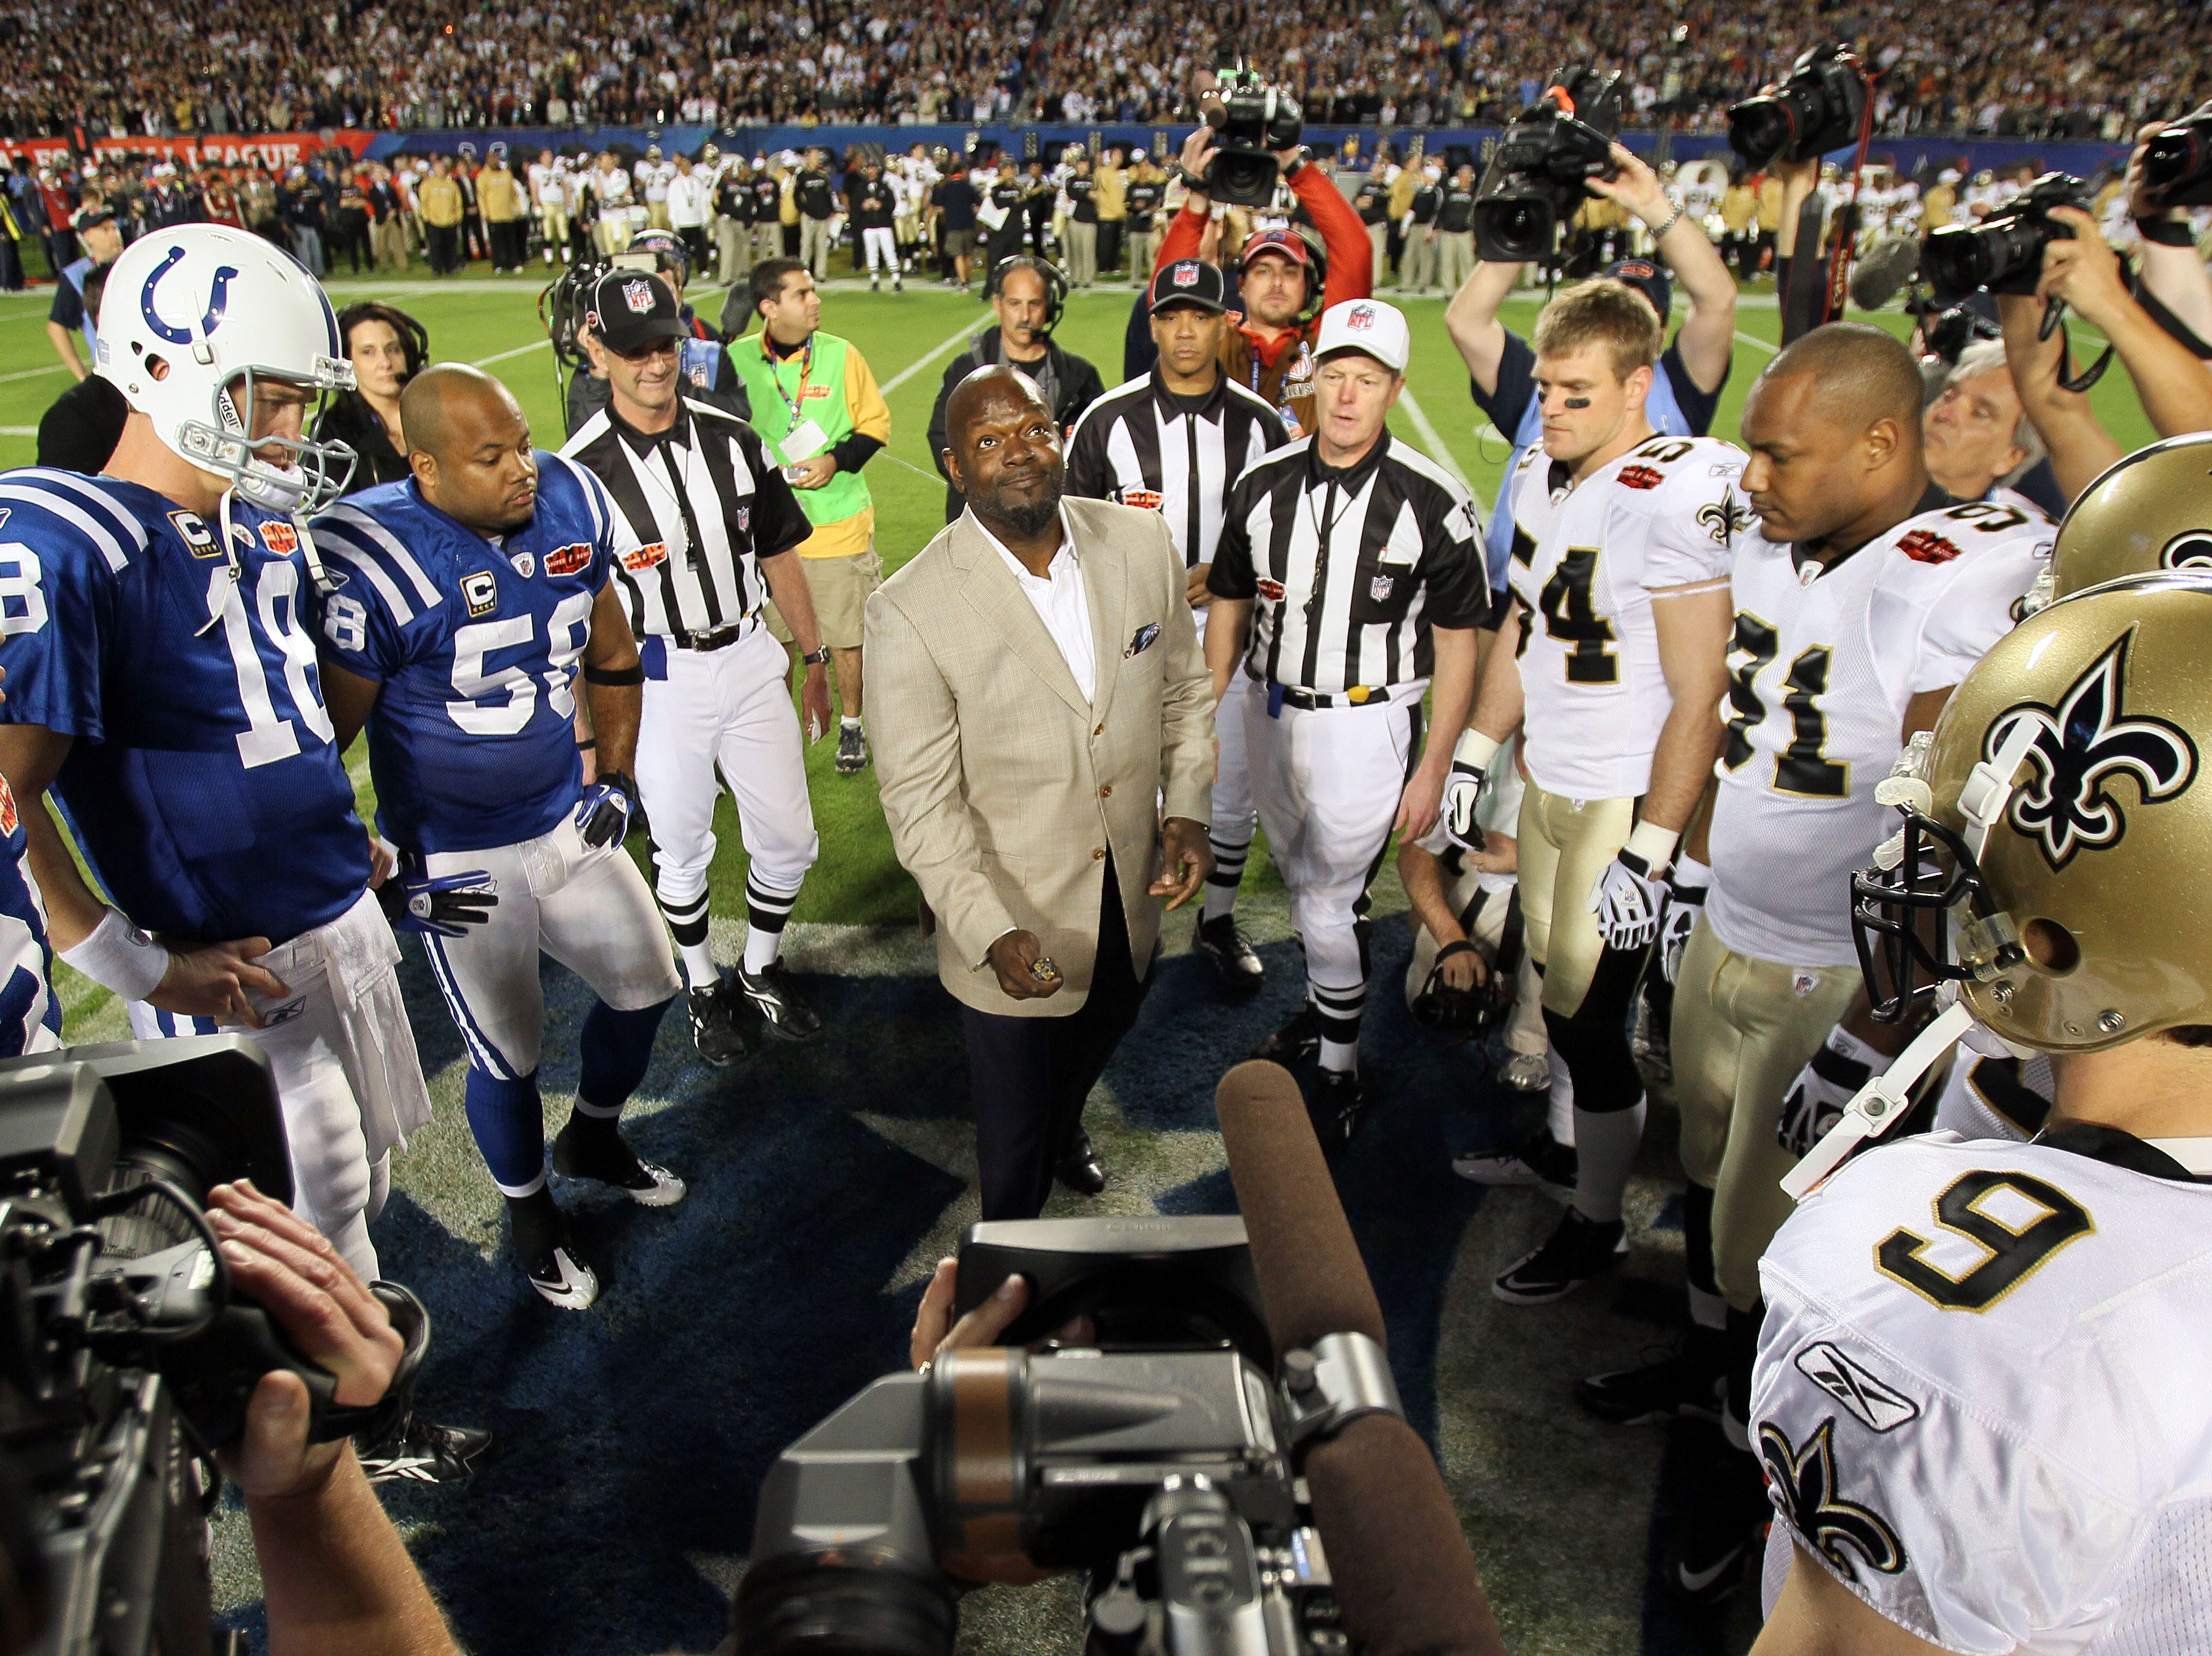 MIAMI GARDENS, FL - FEBRUARY 07: NFL Hall of Famer Emmitt Smith flips the coin prior to the start of Super Bowl XLIV between the Indianapolis Colts and the New Orleans Saints on February 7, 2010 at Sun Life Stadium in Miami Gardens, Florida.  (Photo by Andy Lyons/Getty Images)